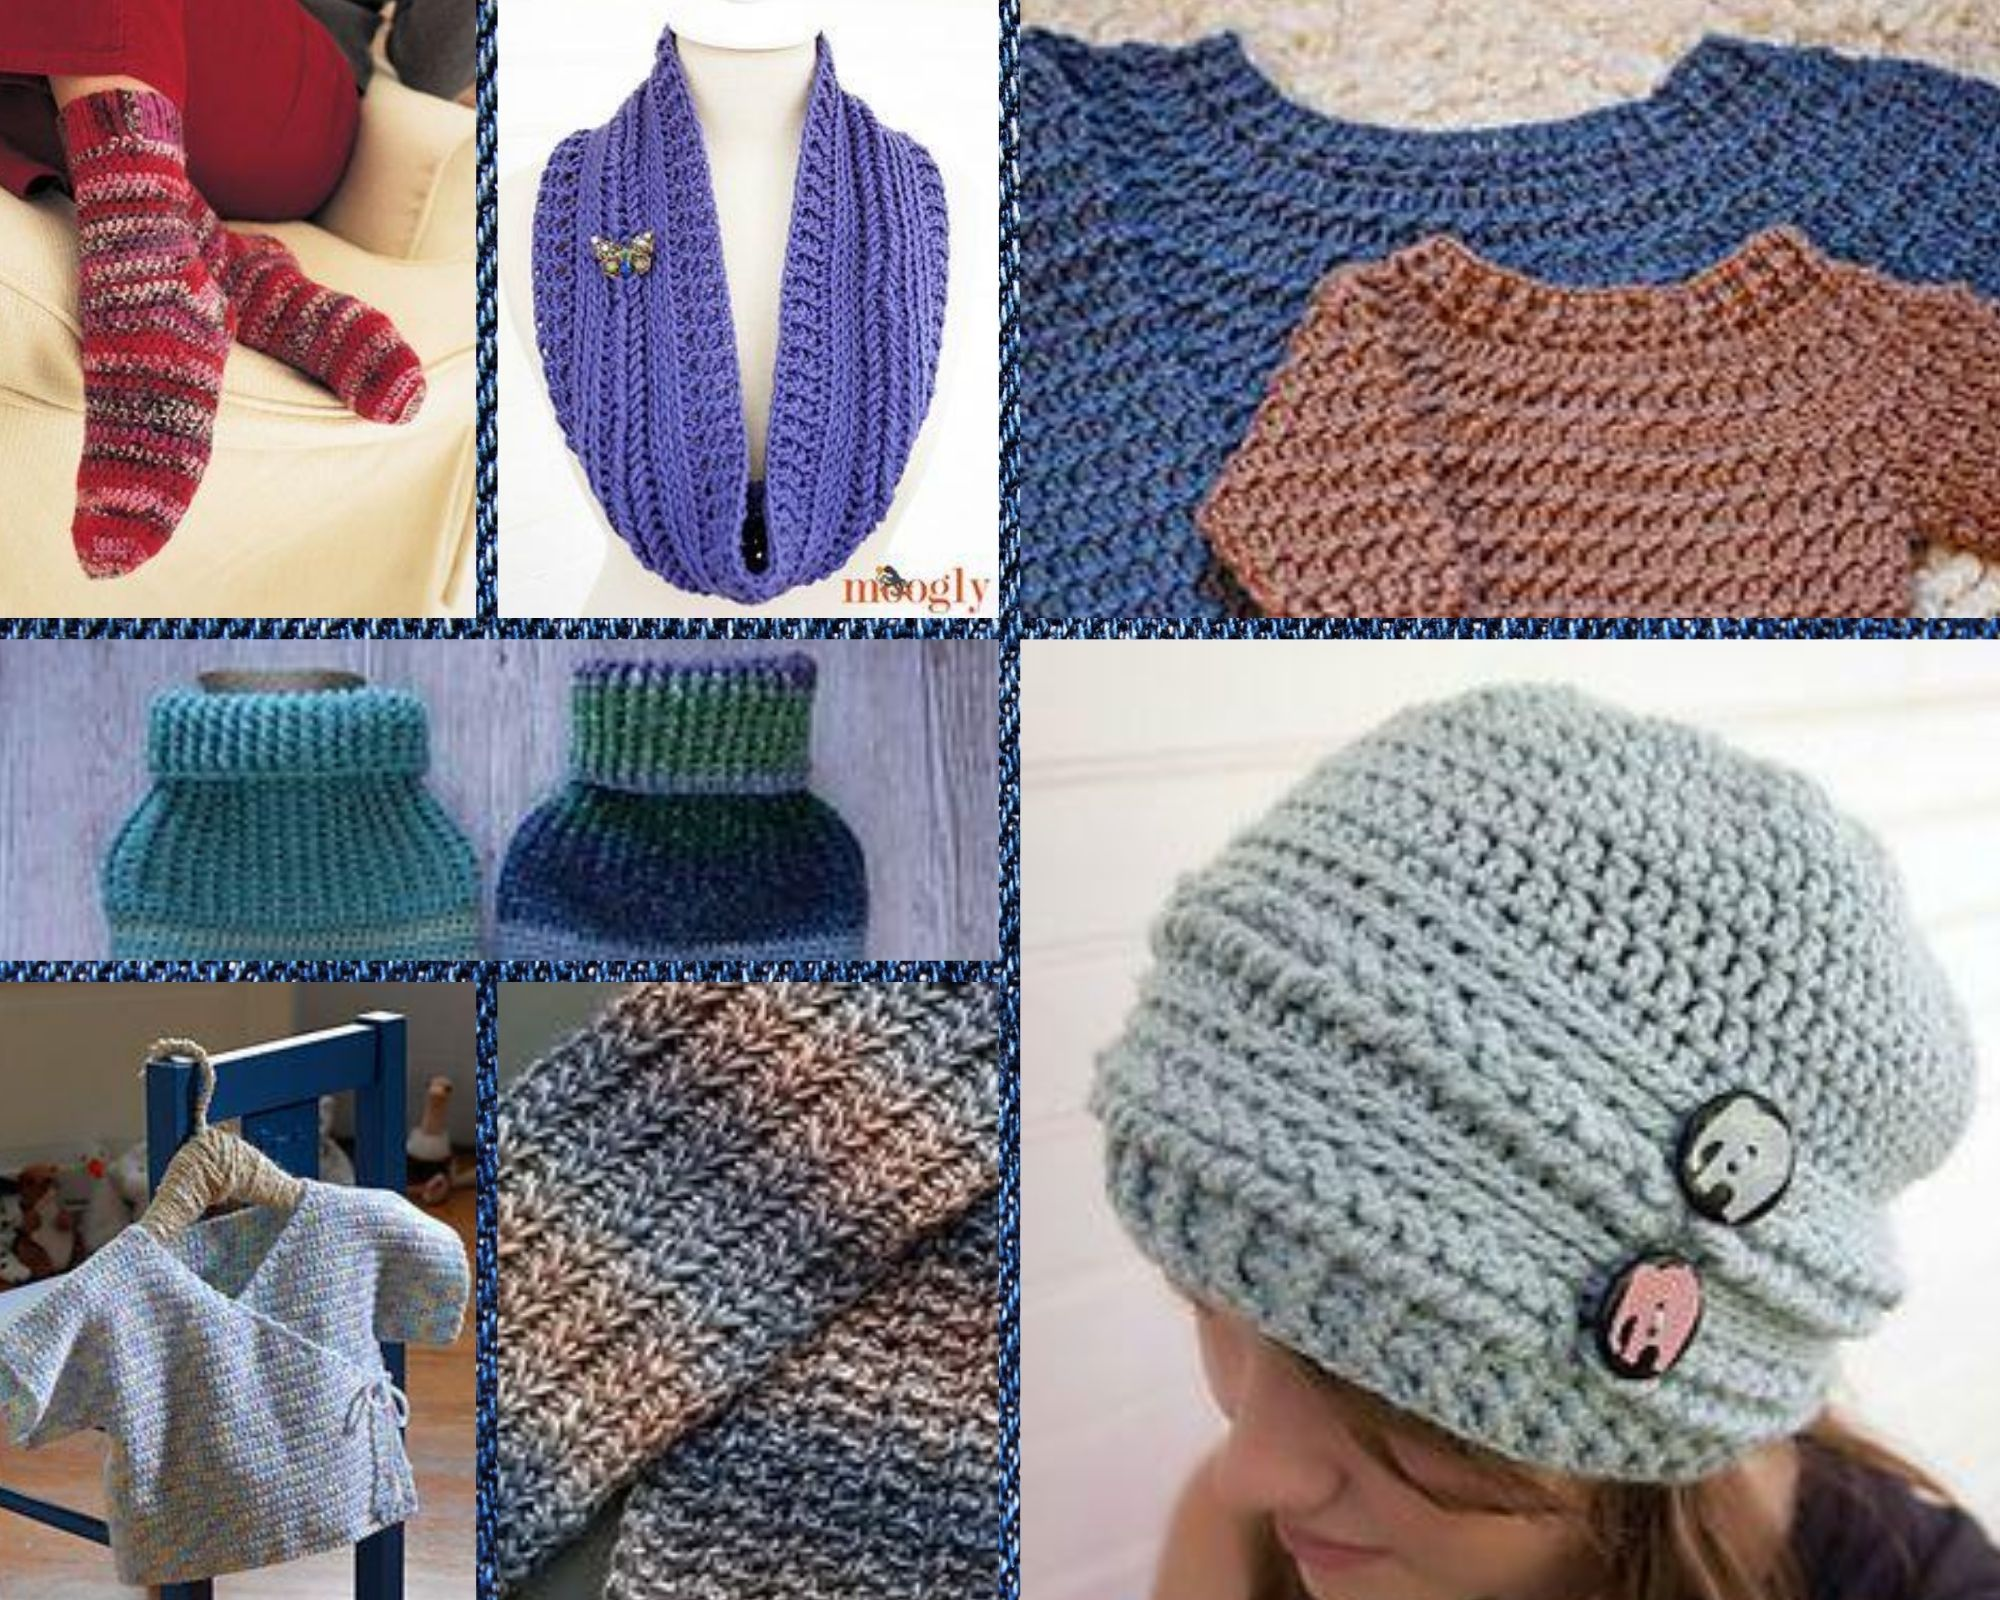 Crochet patterns suitable for the HIY August Mini Yarn Subscription Box